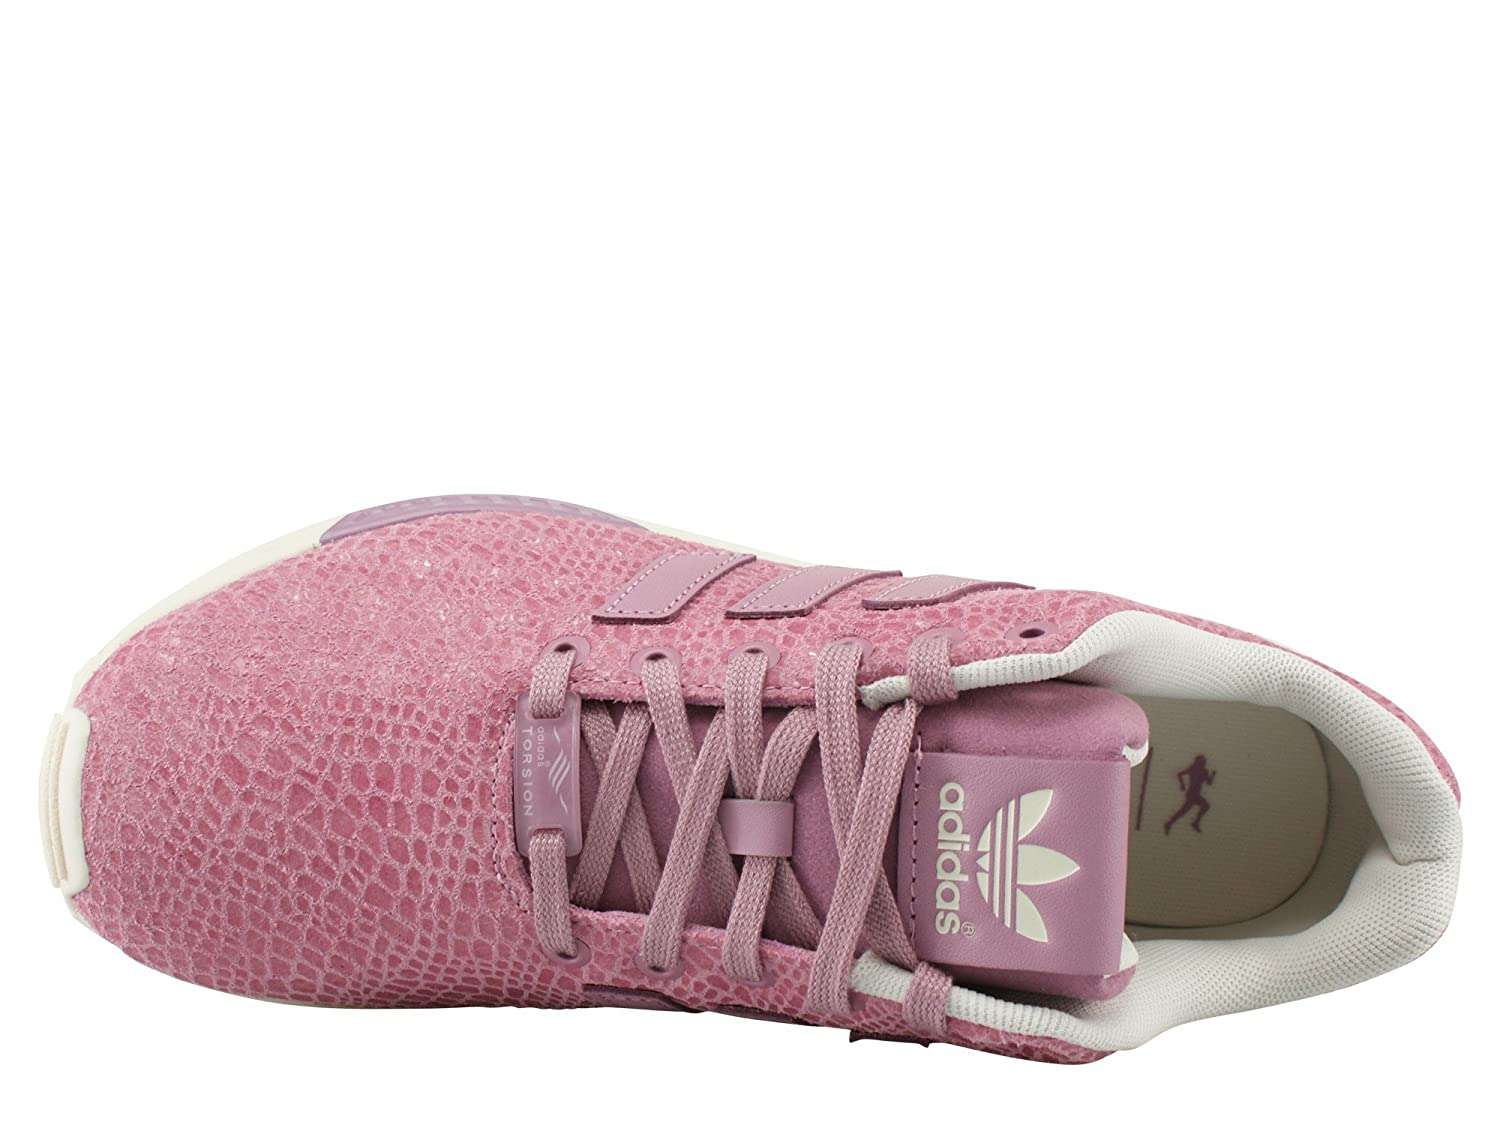 3f9e9a9f5ec0e Adidas Zx Flux Trainers Pink  Amazon.co.uk  Shoes   Bags